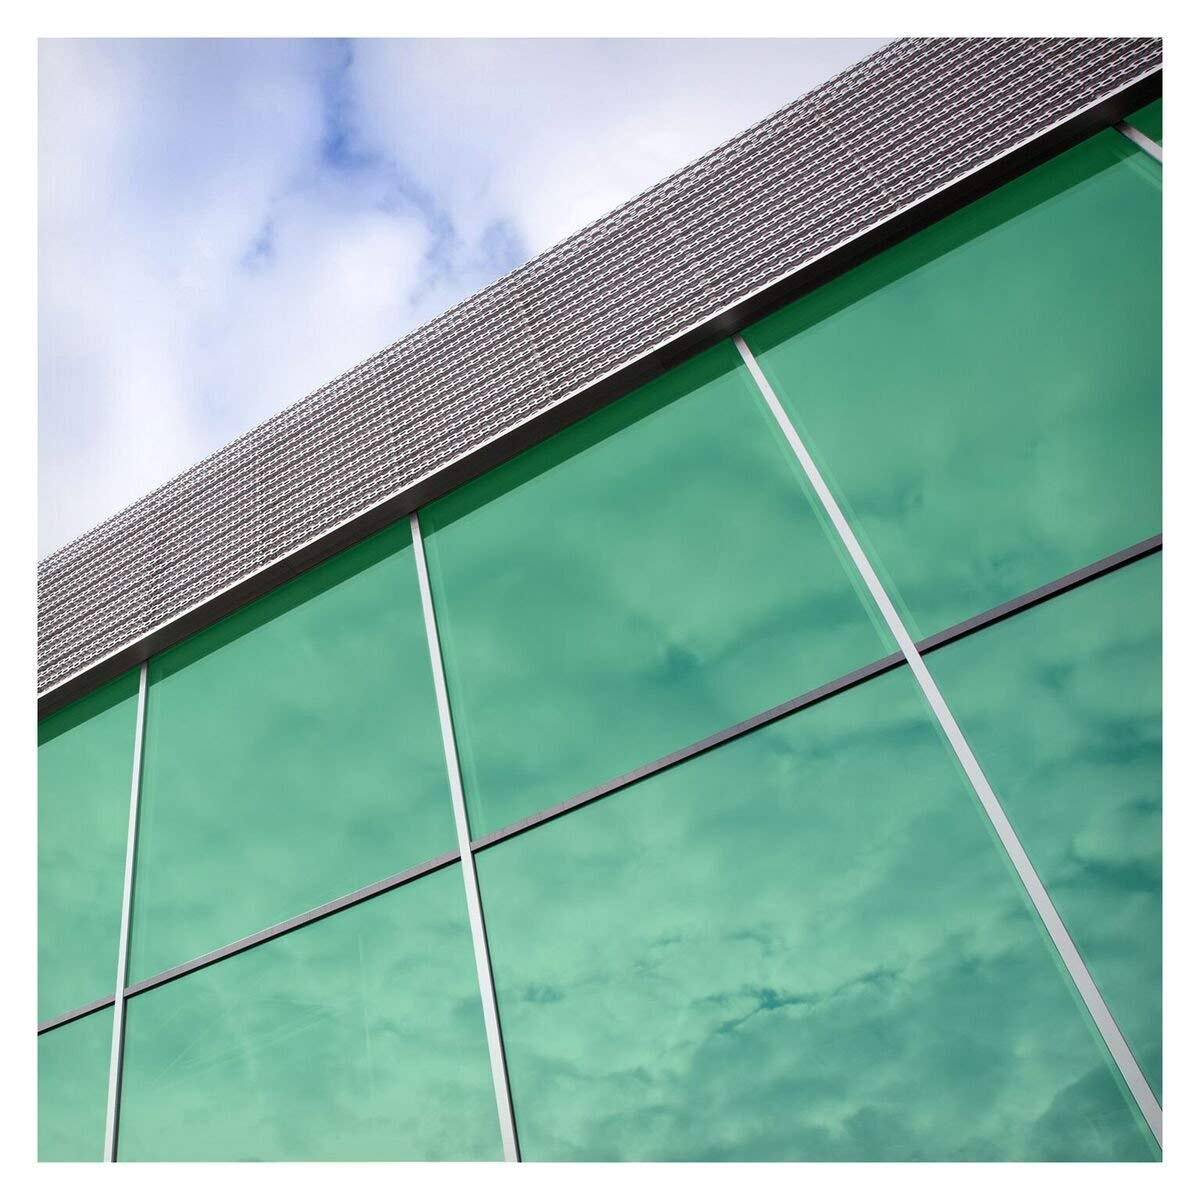 BDF CAGN Transparent Color Green Window Film 36in x 7ft by BuyDecorativeFilm